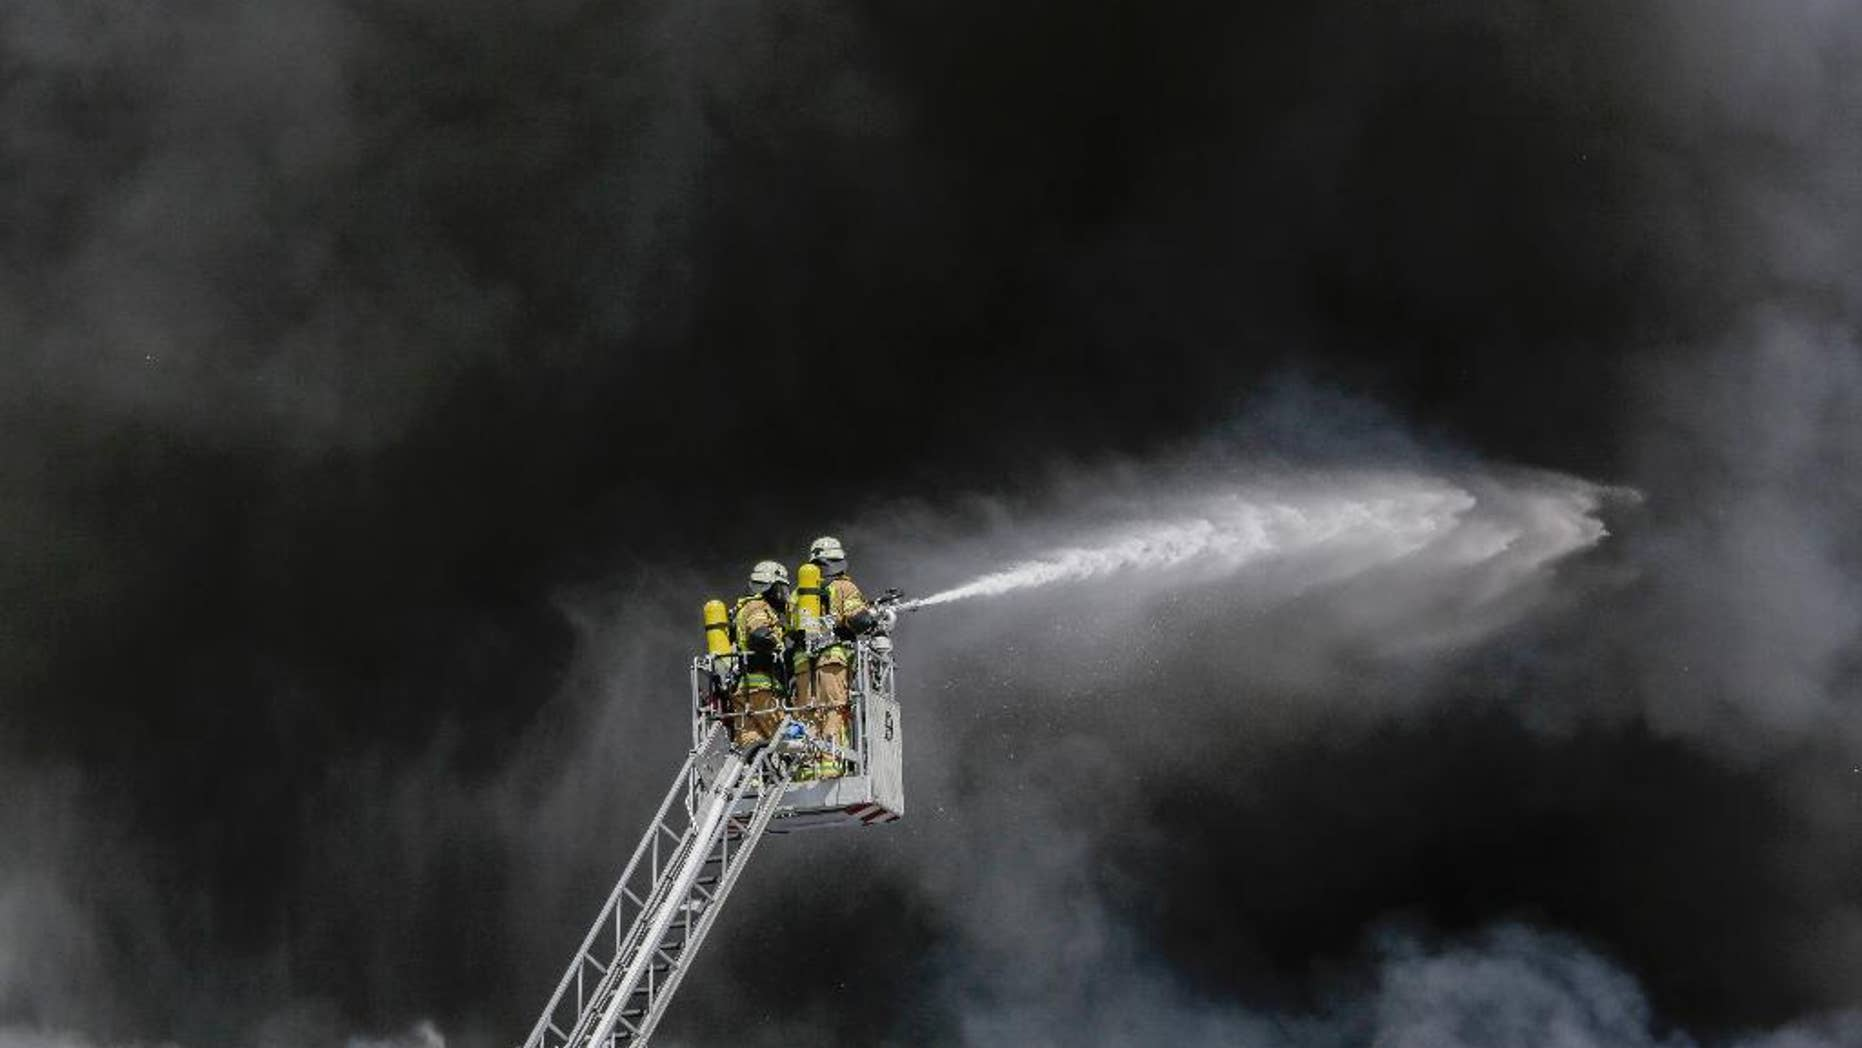 Fire fighters spray water in front of smoke at a burning storage hall of the Dong Xuan Center, an Asia market specialized in Vietnamese goods, in Berlin, Germany, Wednesday, May 11, 2016. The fire department sent some 150 trucks and other vehicles to the fire which broke out Wednesday morning . (AP Photo/Markus Schreiber)